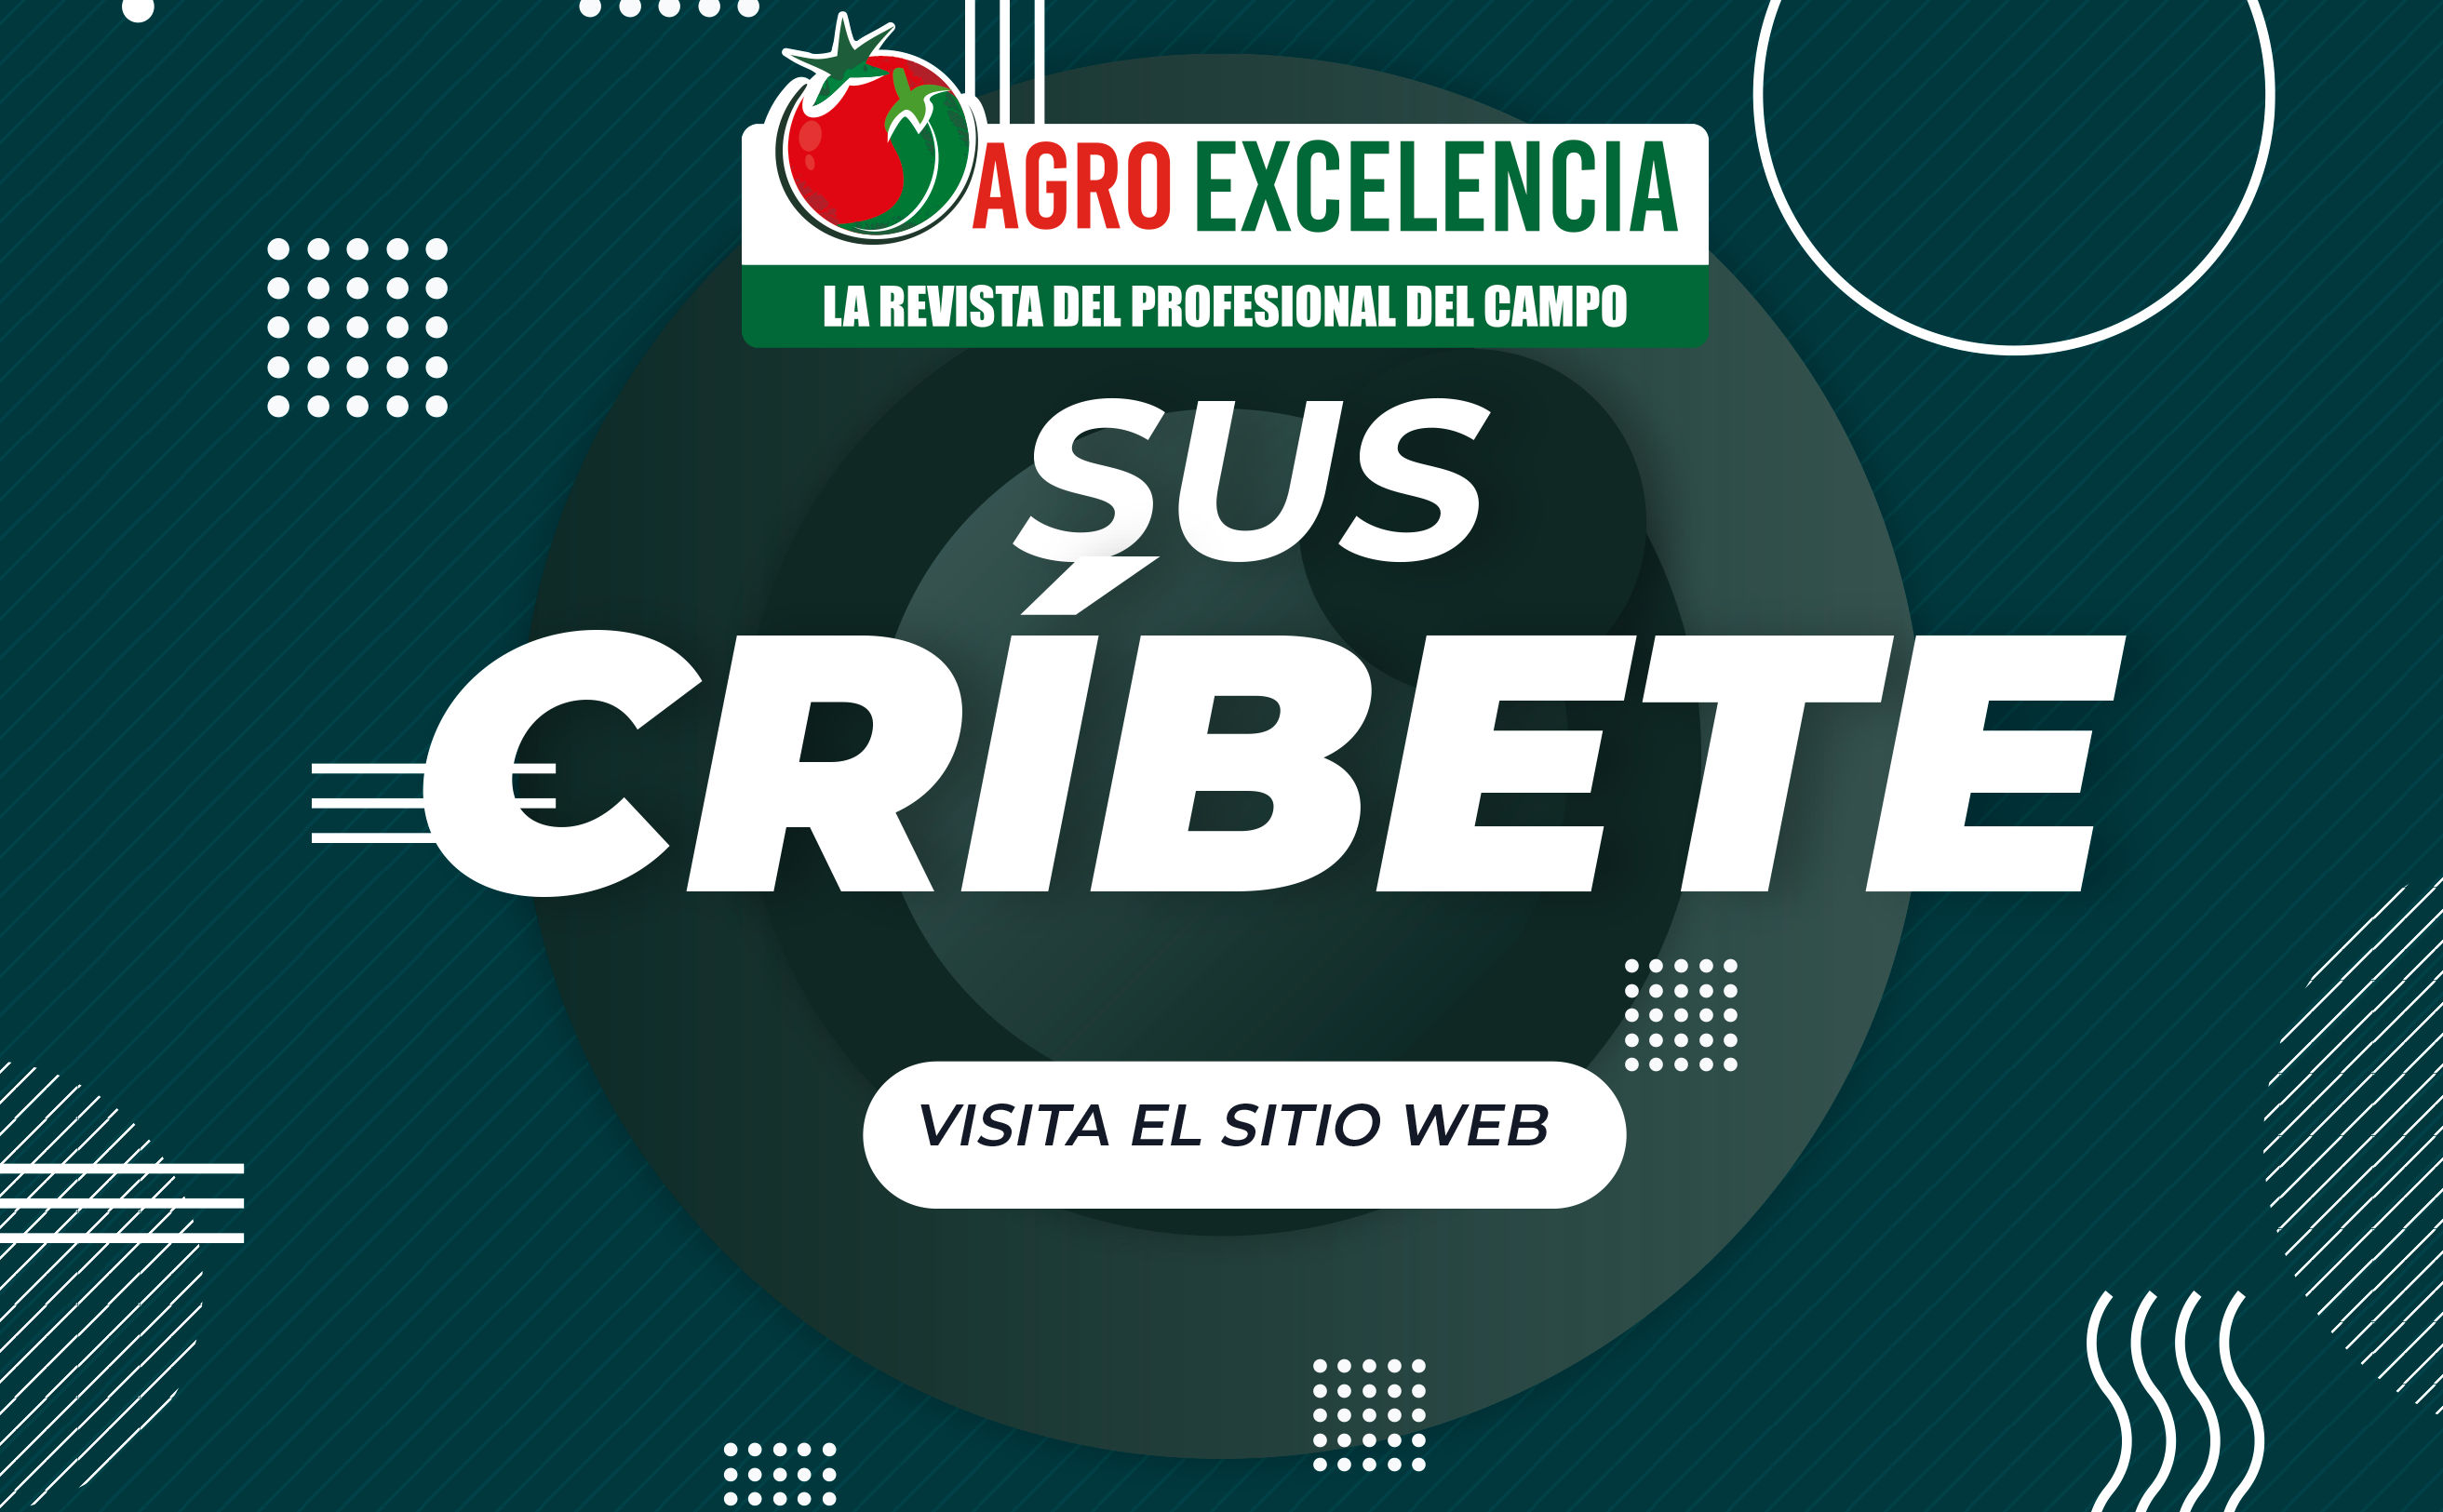 https://agroexcelencia.com/wp-content/uploads/2020/08/1-1.png